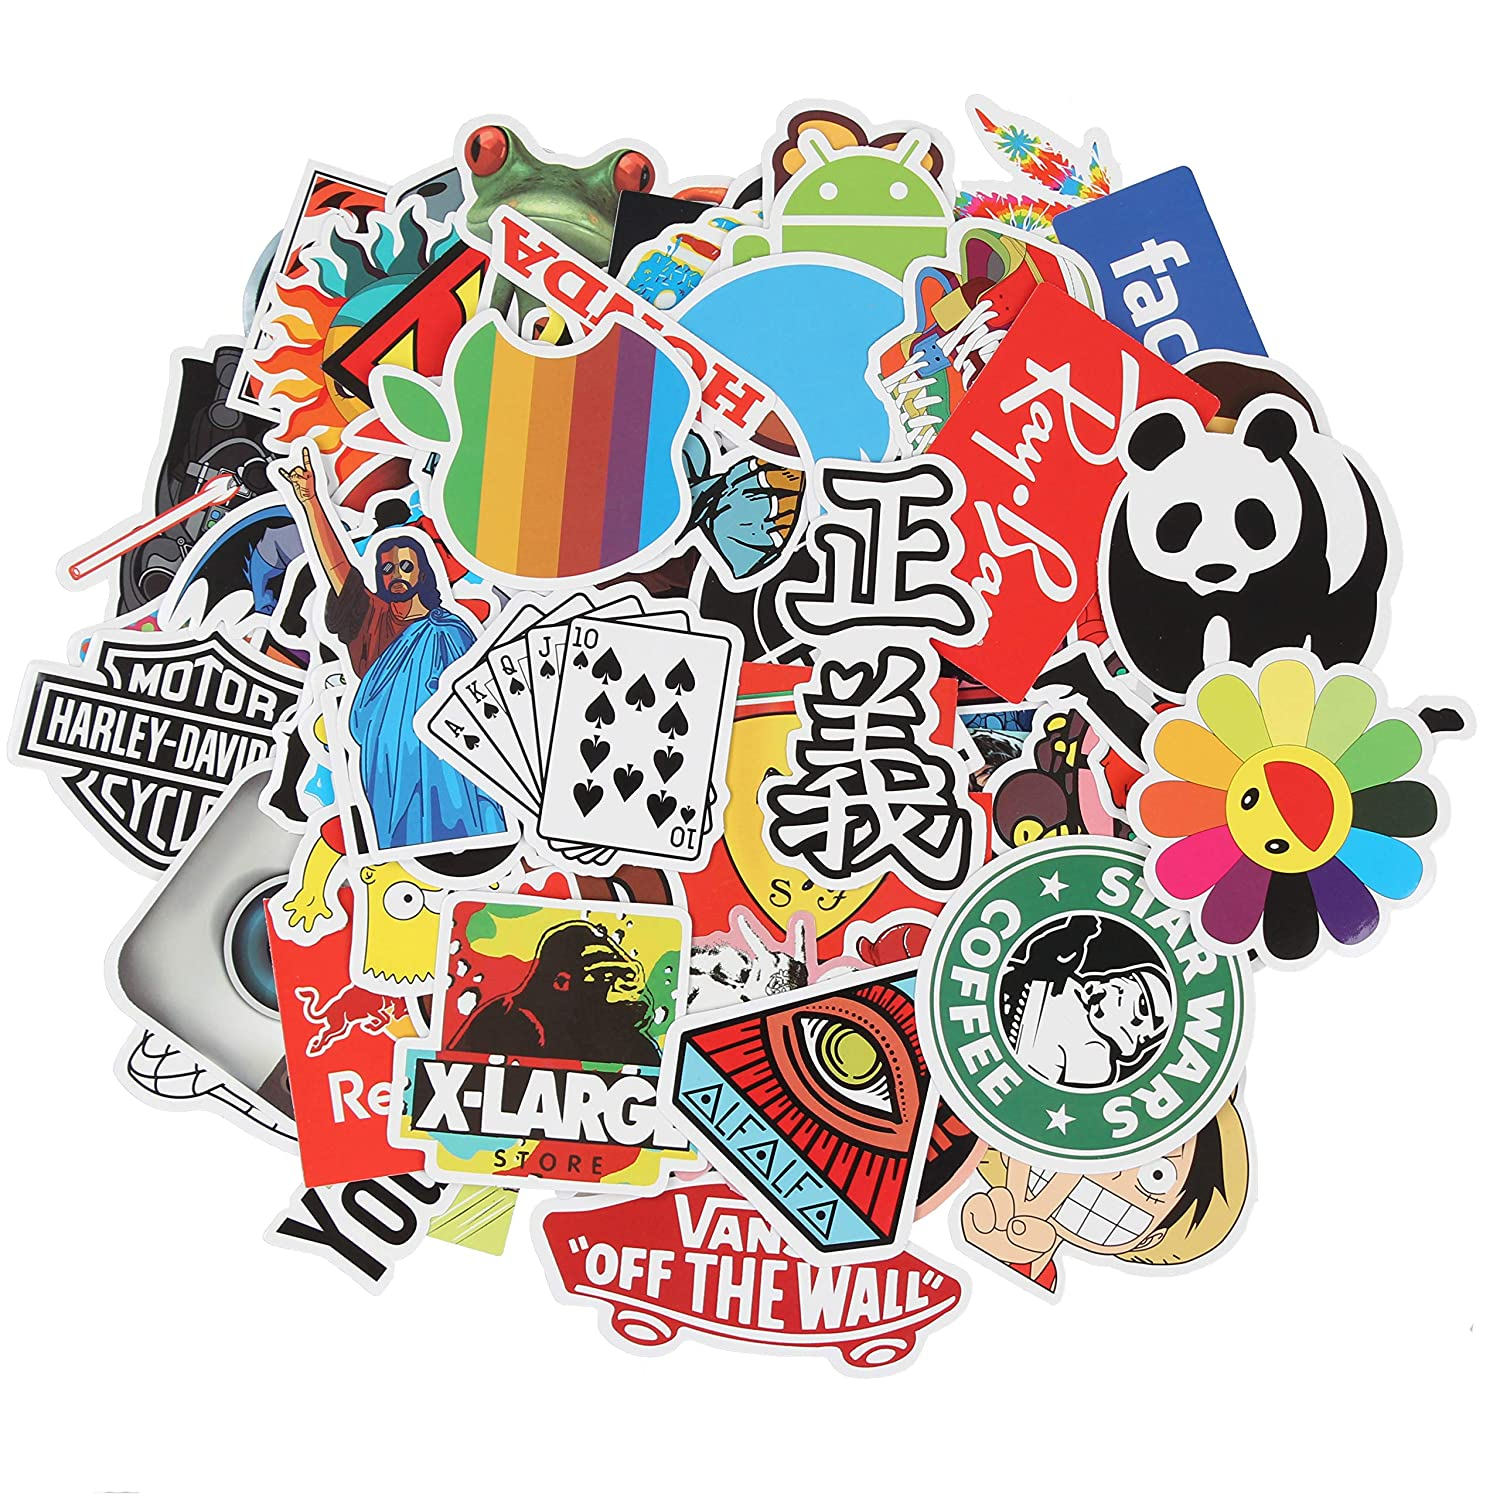 Sticker decals waterproof 100 pcs cool sticker pack laptop vinyl stickers ccar sticker for snowboard motorcycle bicycle phone mac computer diy car window